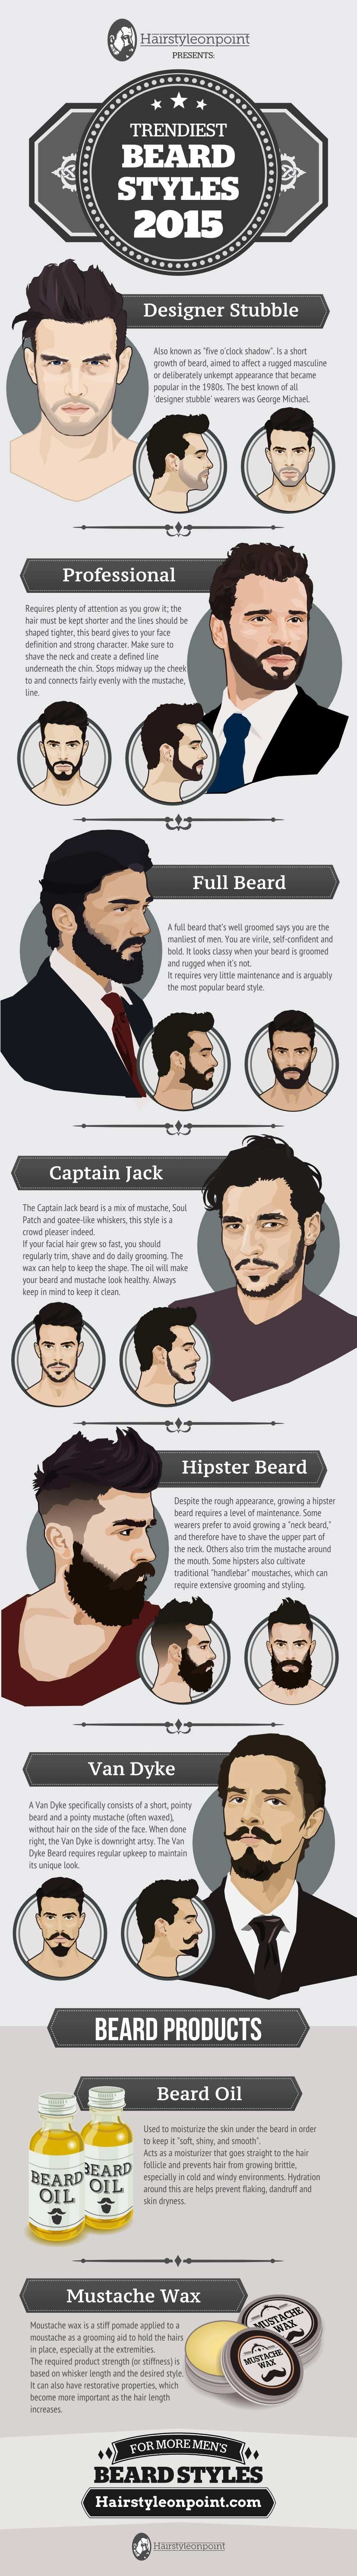 6 Hottest Beard Styles Of 2015 That Will Take Your Beard Game To Another Level